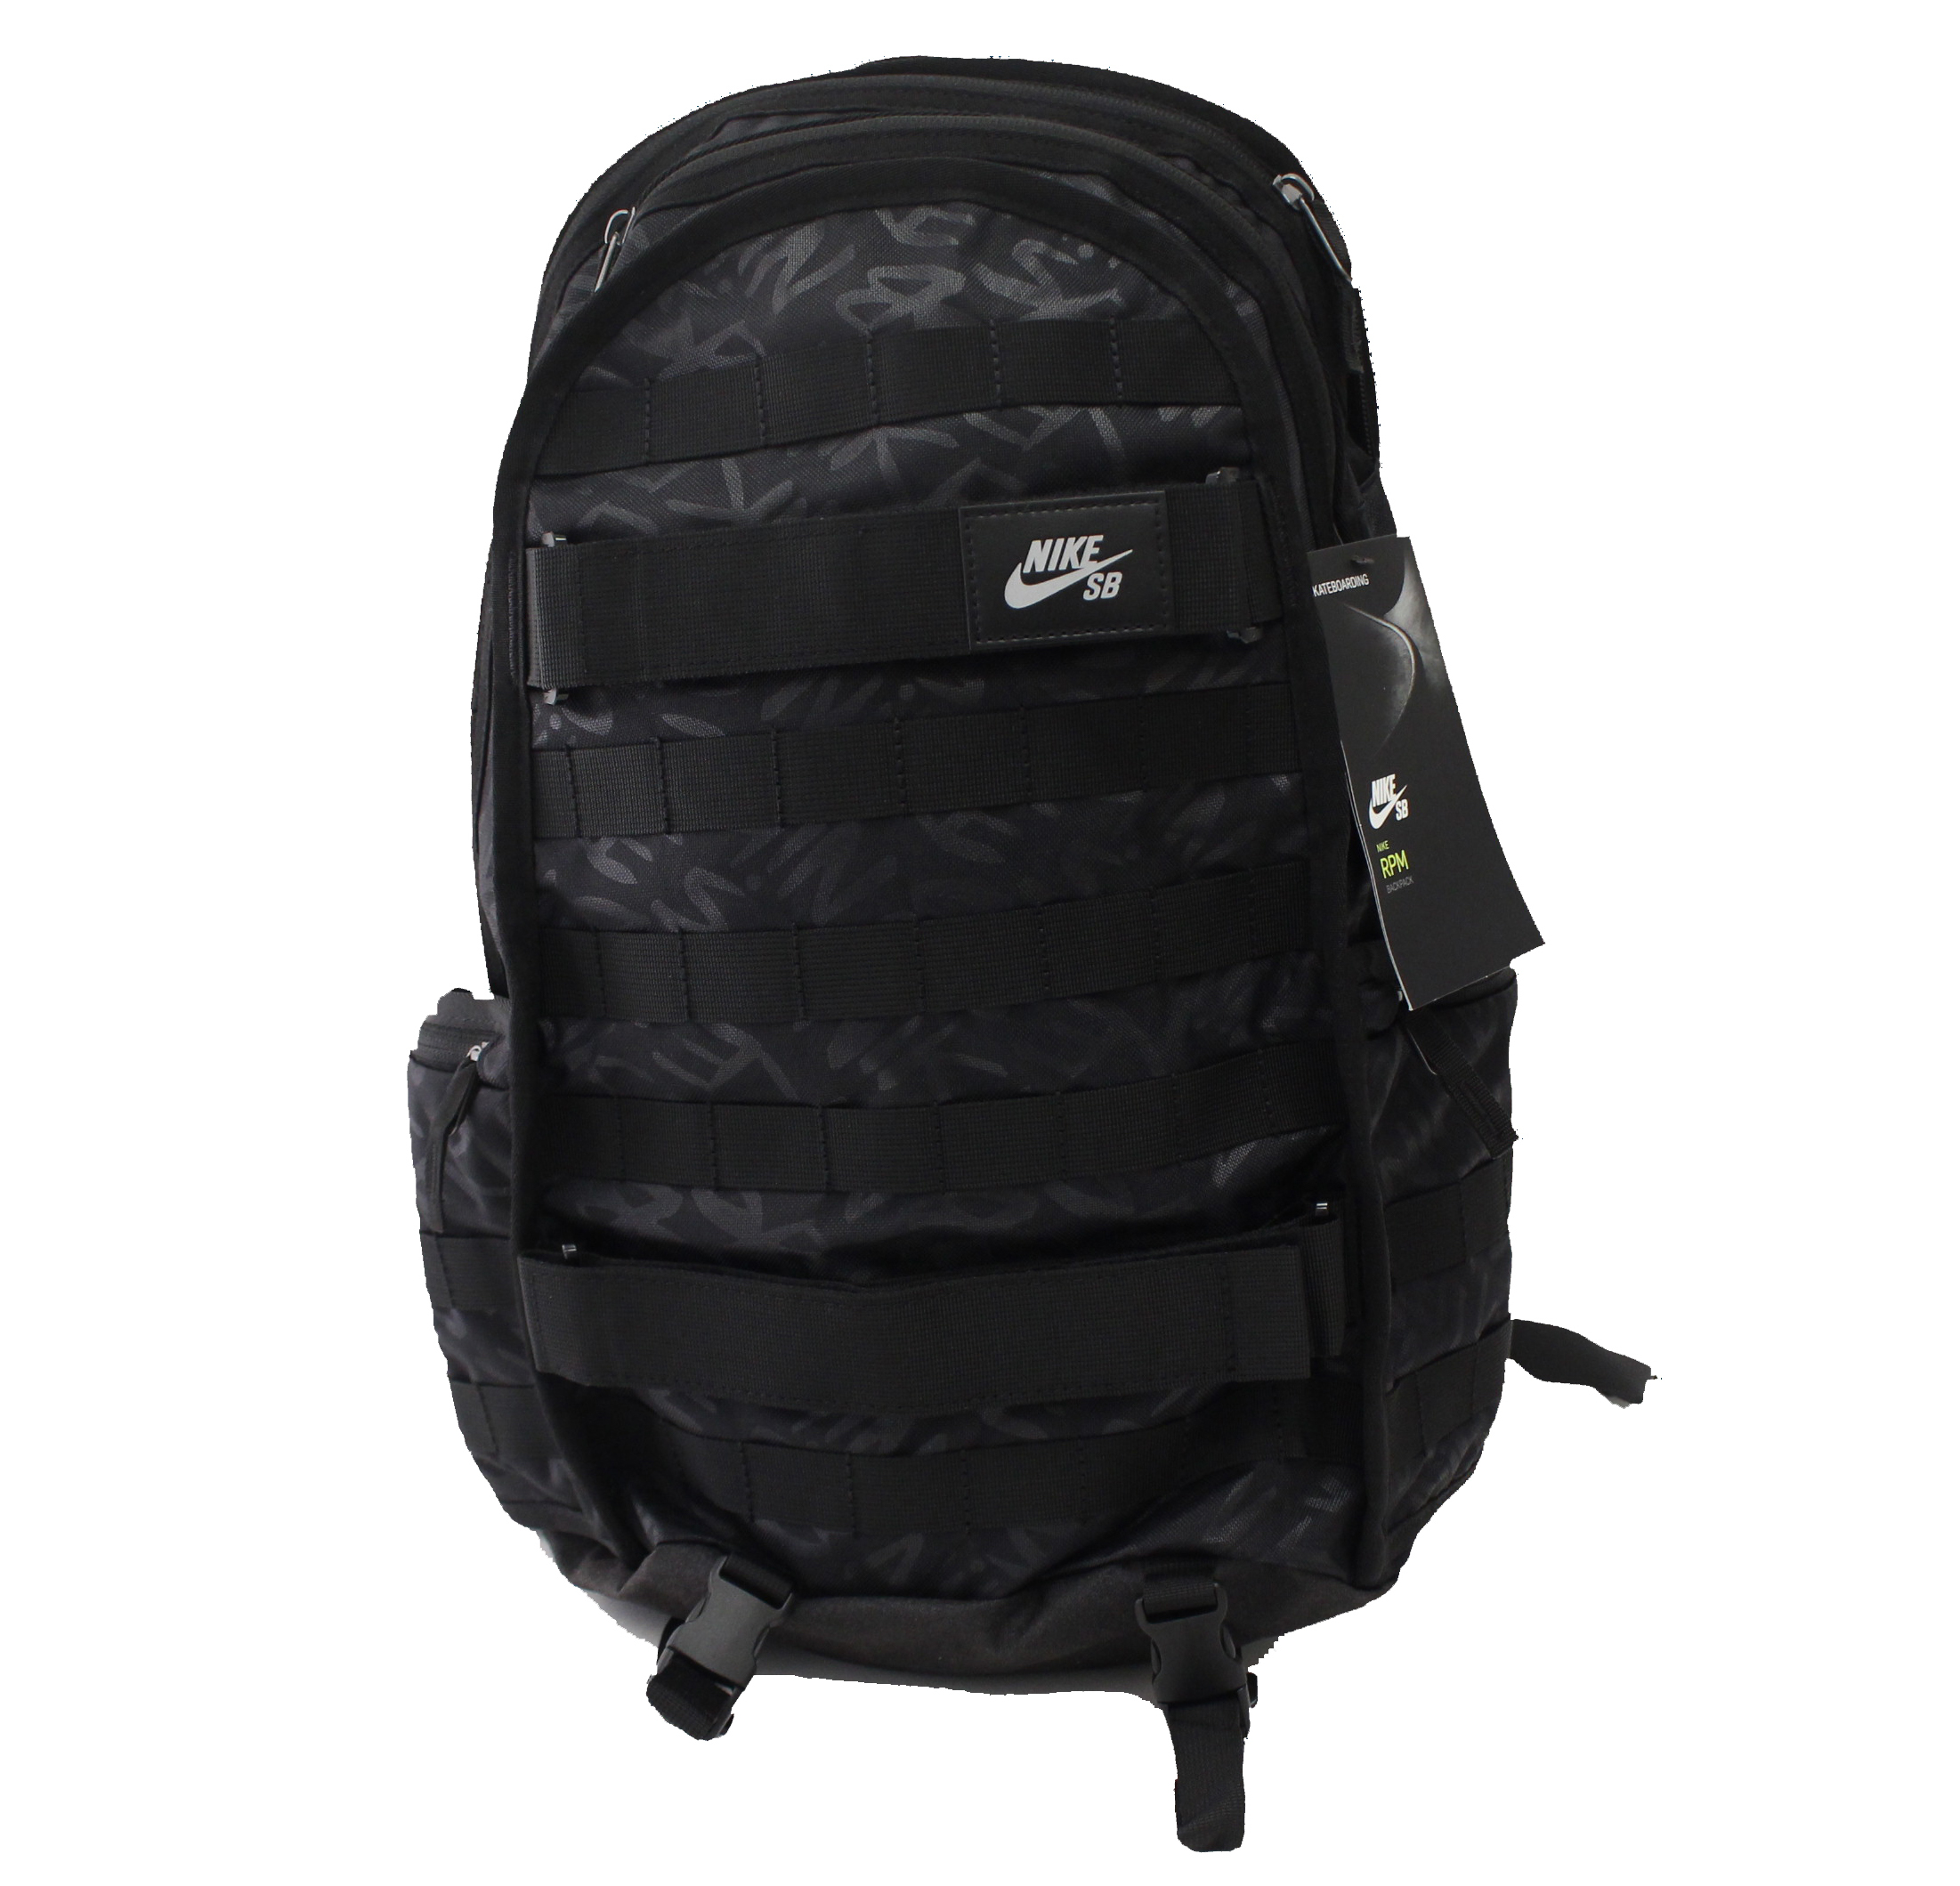 NIKE SB RPM SKATE BACKPACK TRIPLE BLACK WATER RESISTANT LAPTOP BAG BA5404 010 by